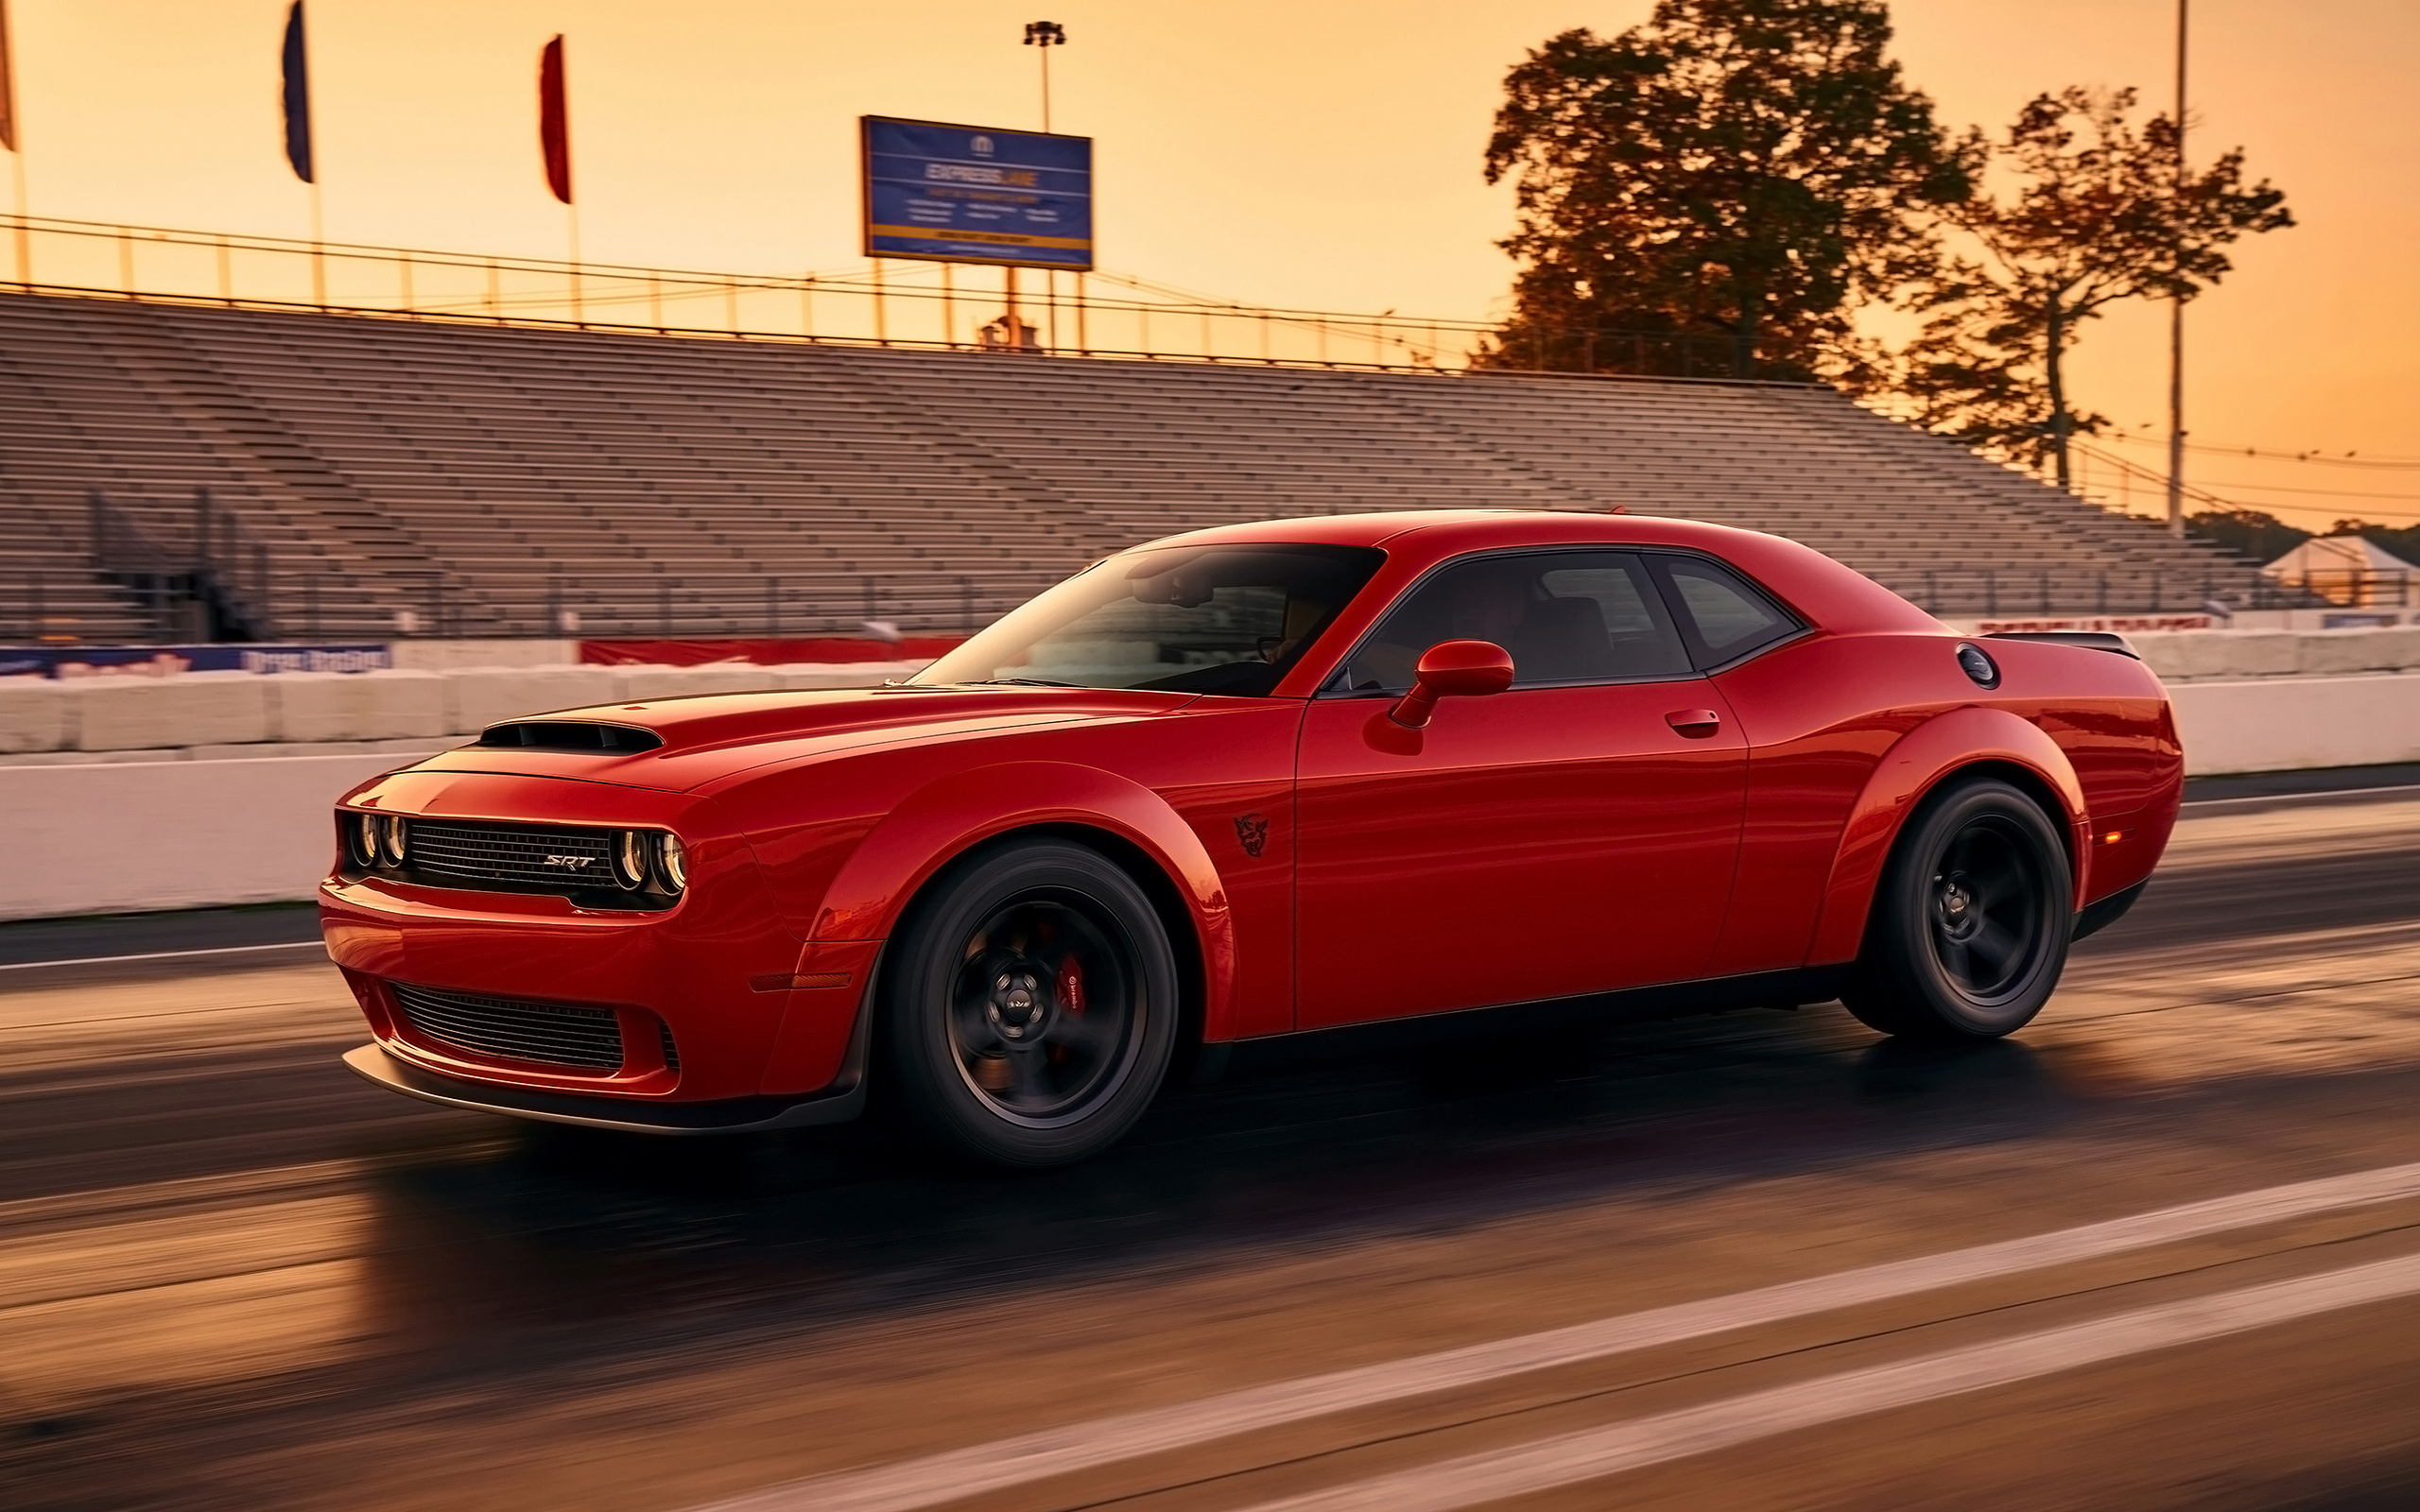 Daily Wallpaper Fastest Car In The World Demon I Like